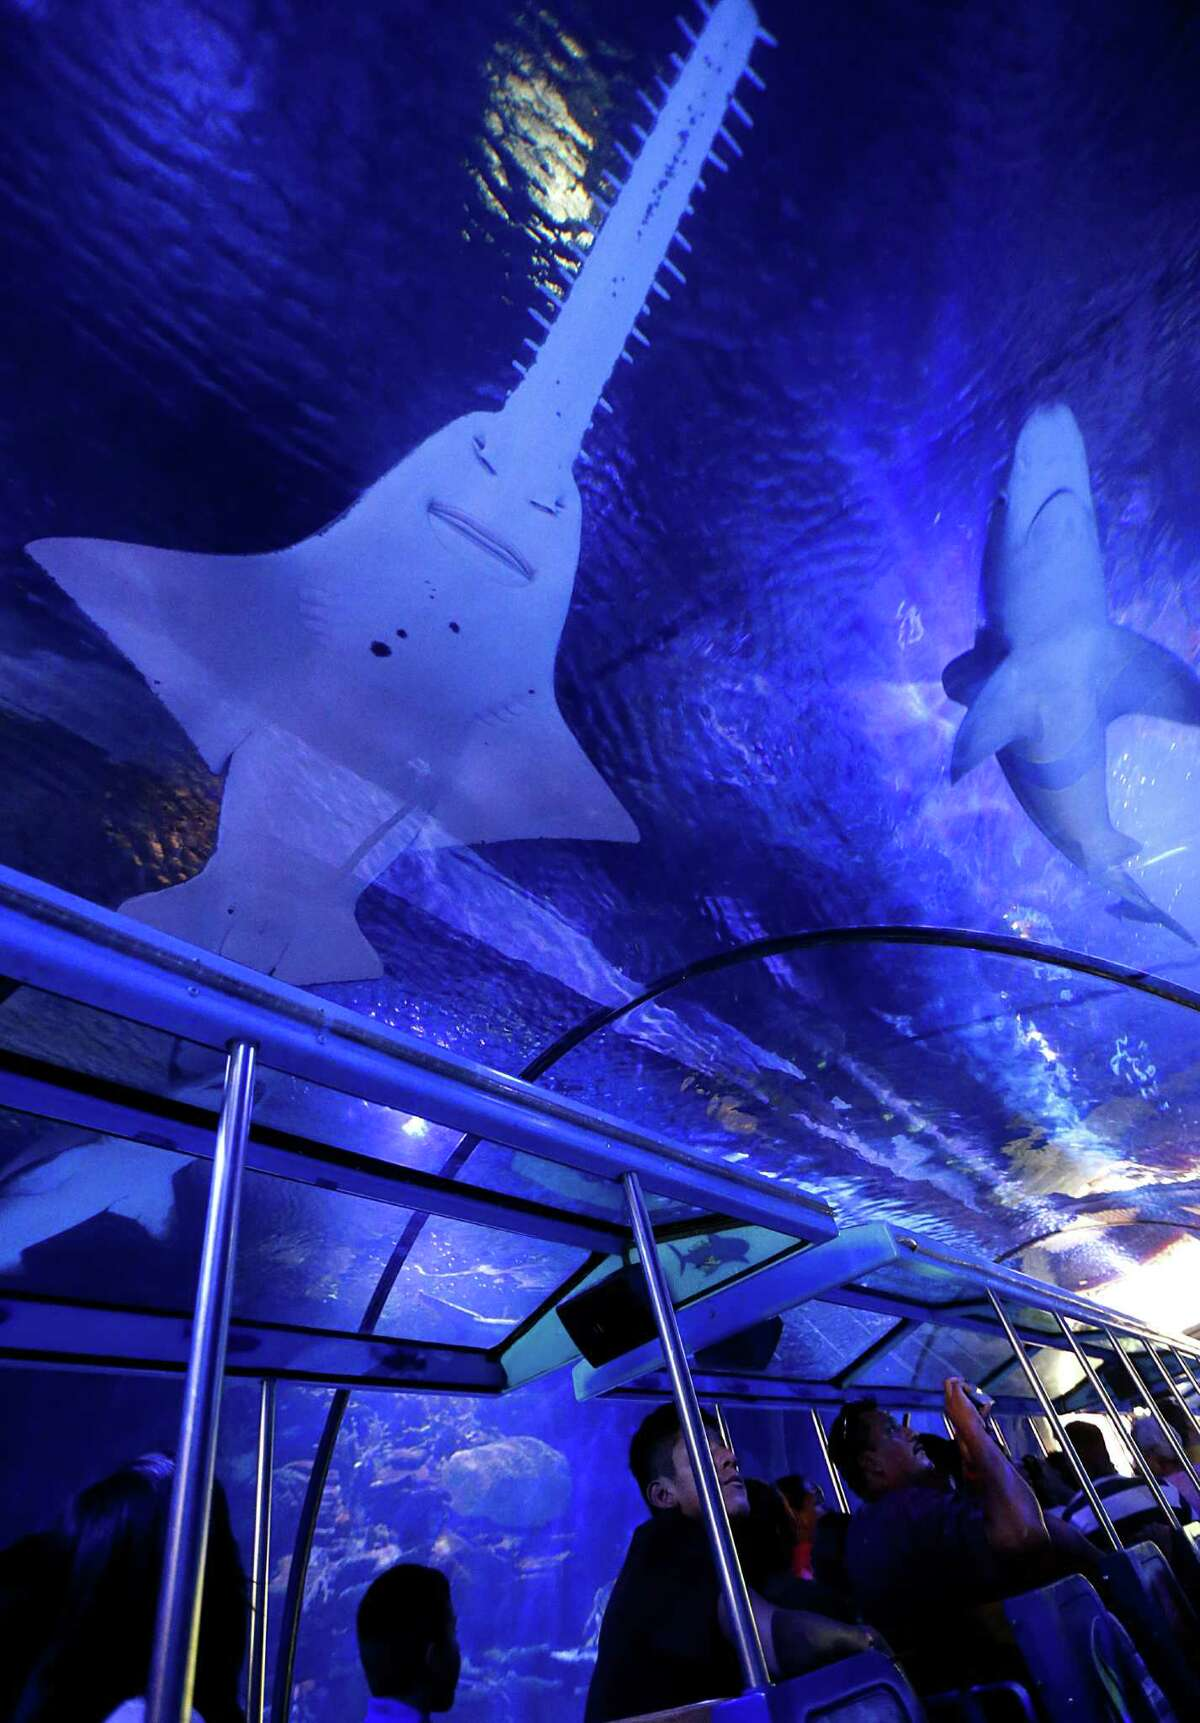 The Shark Voyage train ride under the 200,000 gallon shark tank during Shark Weekend at the Downtown Aquarium Saturday, Aug. 8, 2015, in Houston.